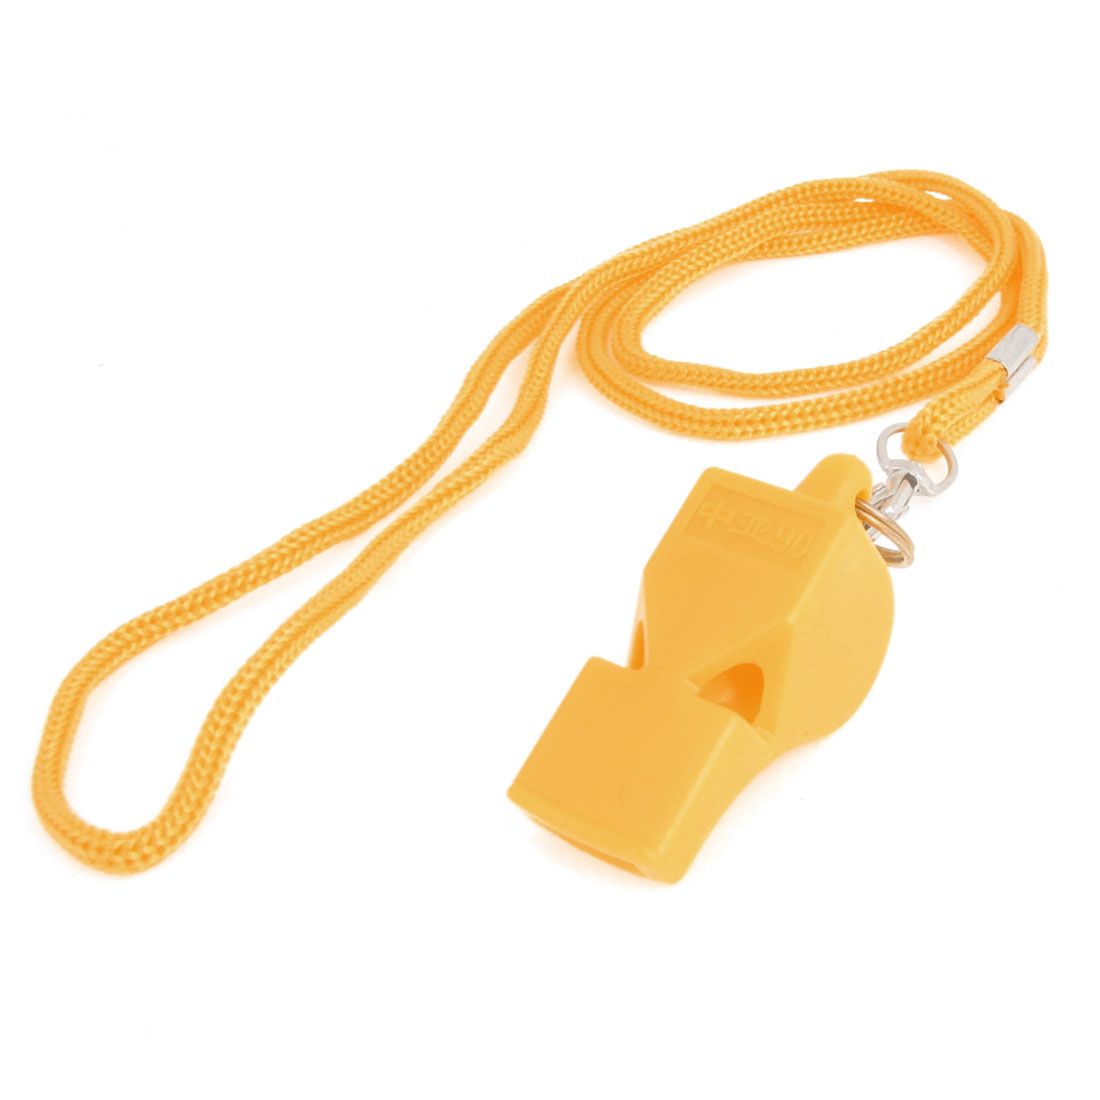 Sports Training Neck String Plastic Referee Whistle Yellow